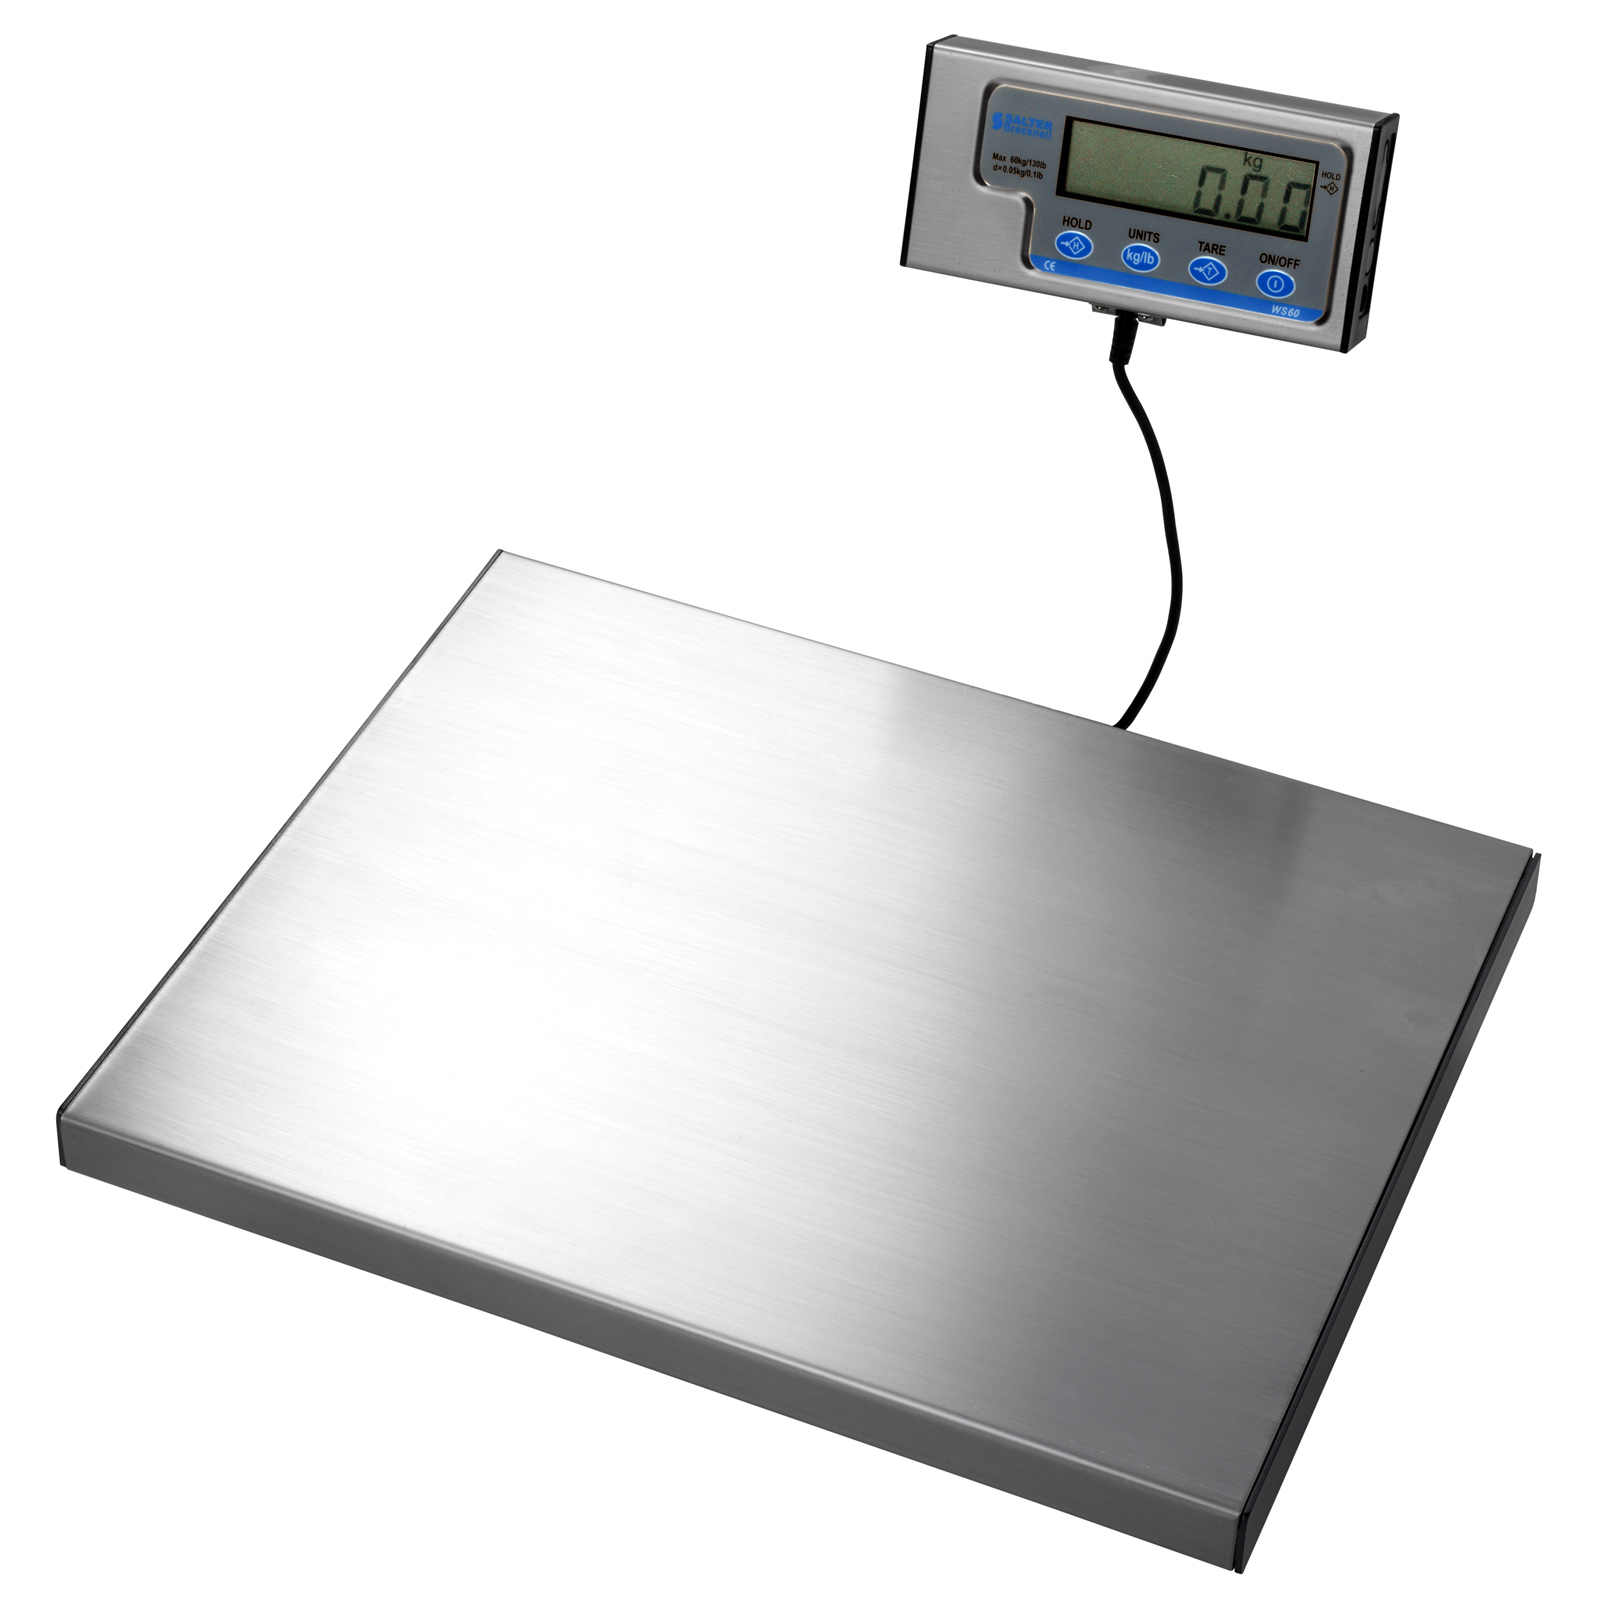 Small Platform Parcel Scale 380x300mm Up to 15Kg Capacity with .005g Increments